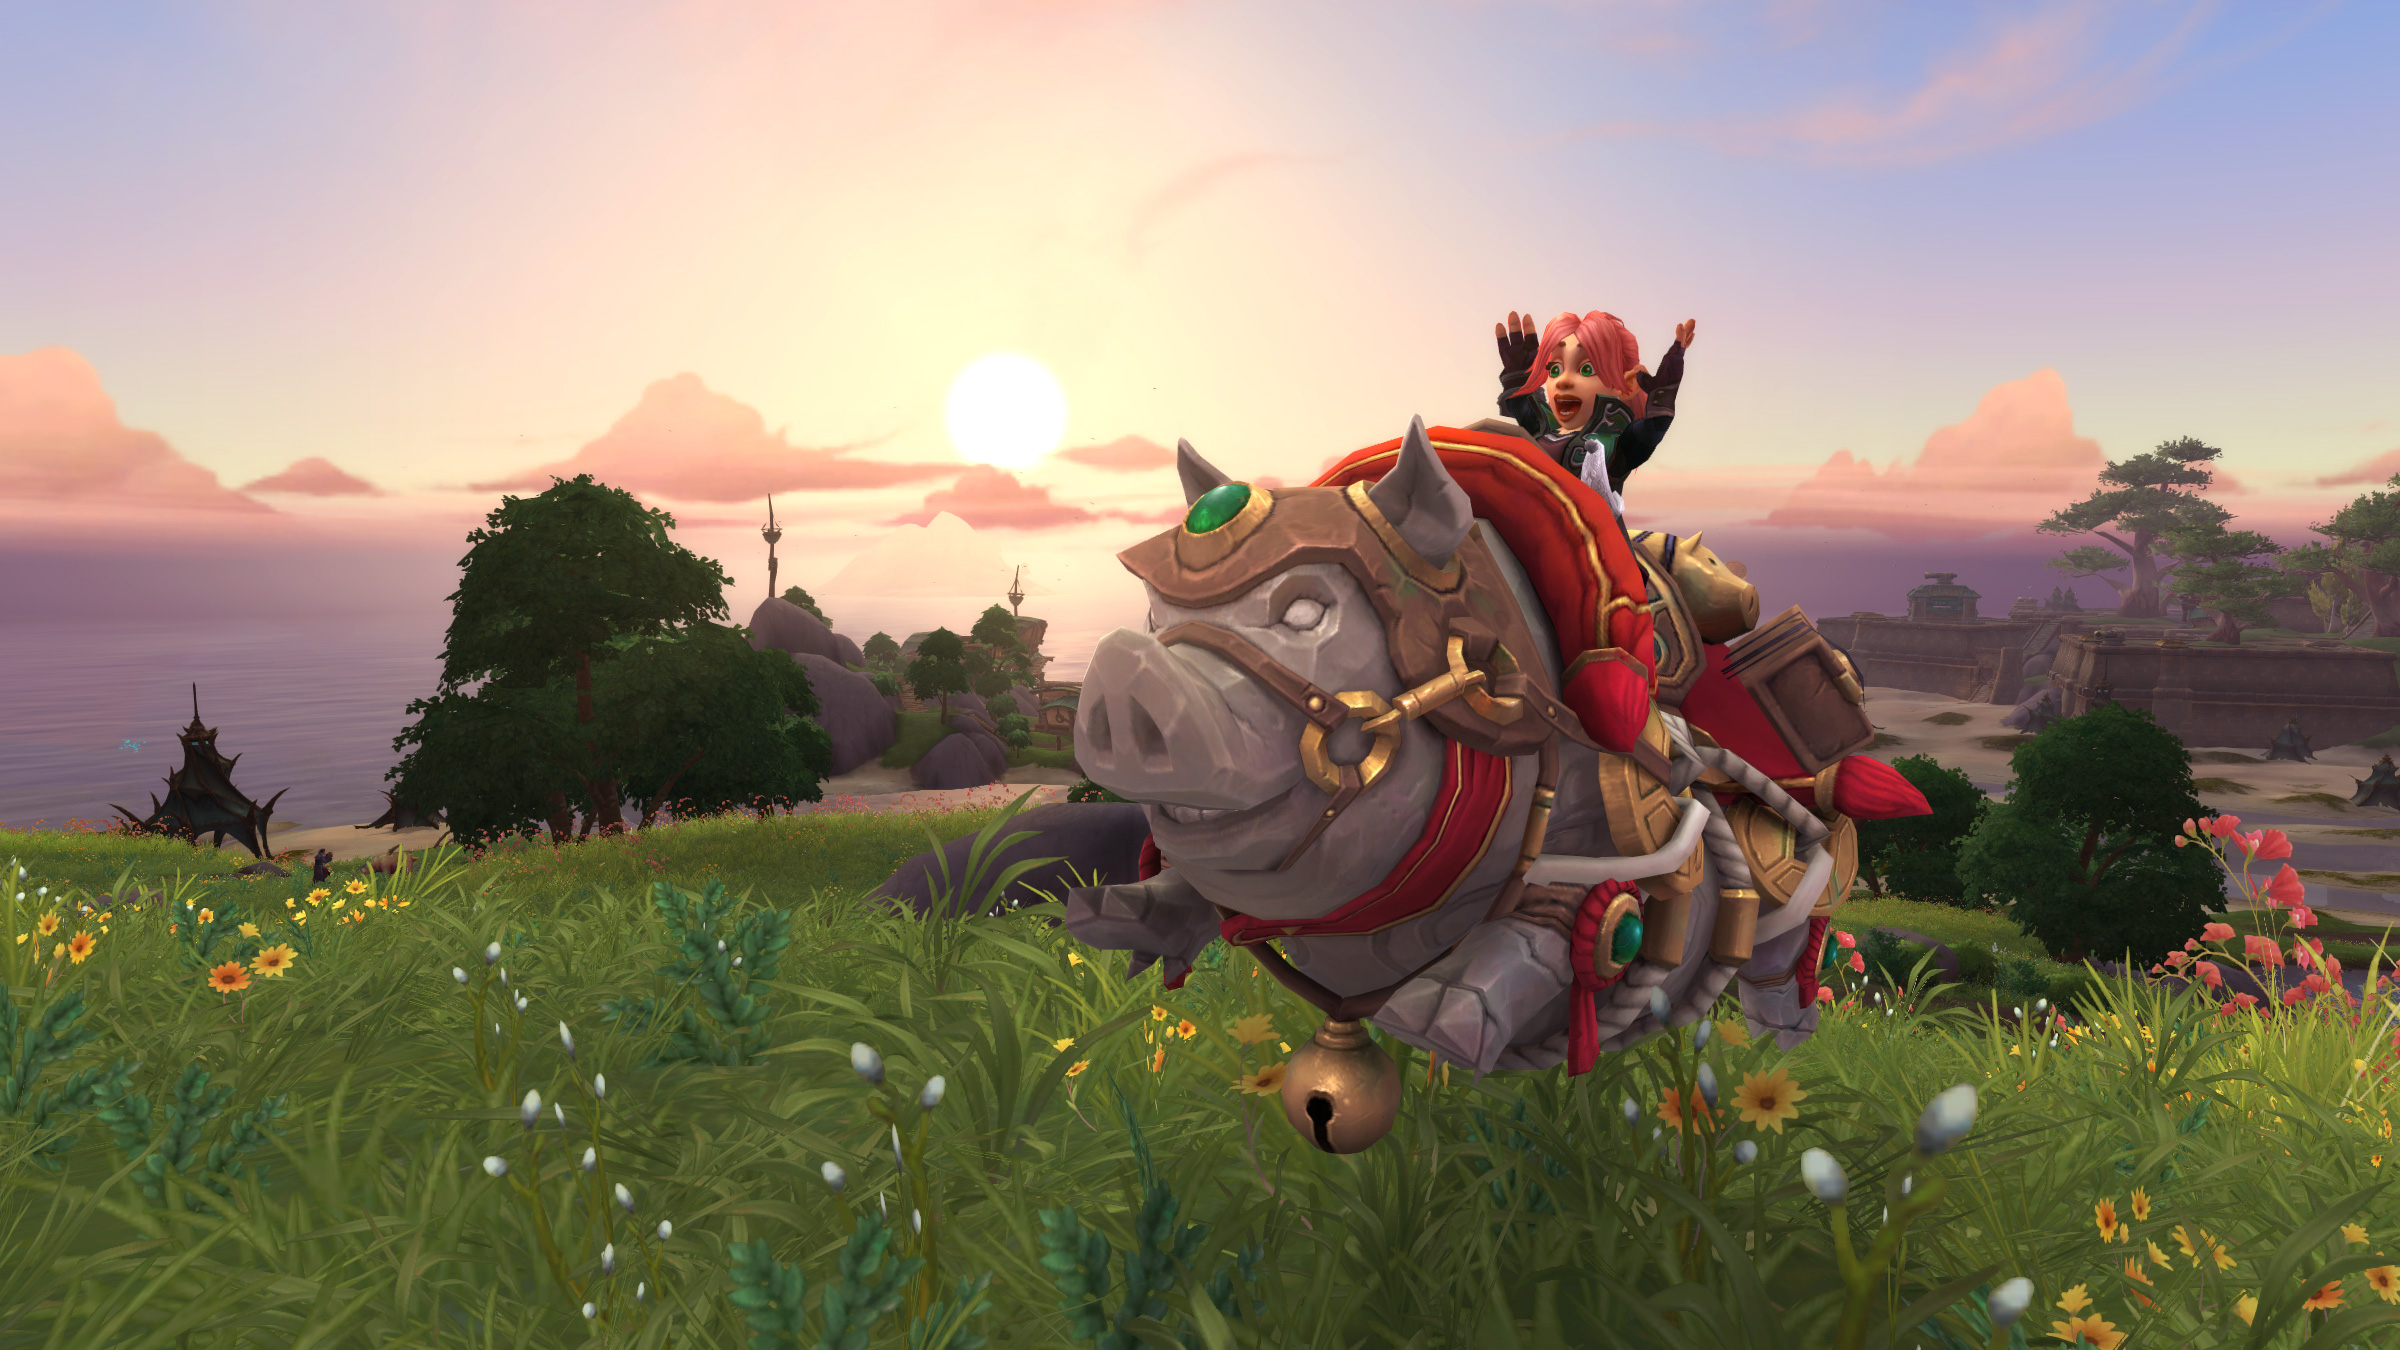 New Mount: Hogrus, Swine of Good Fortune!